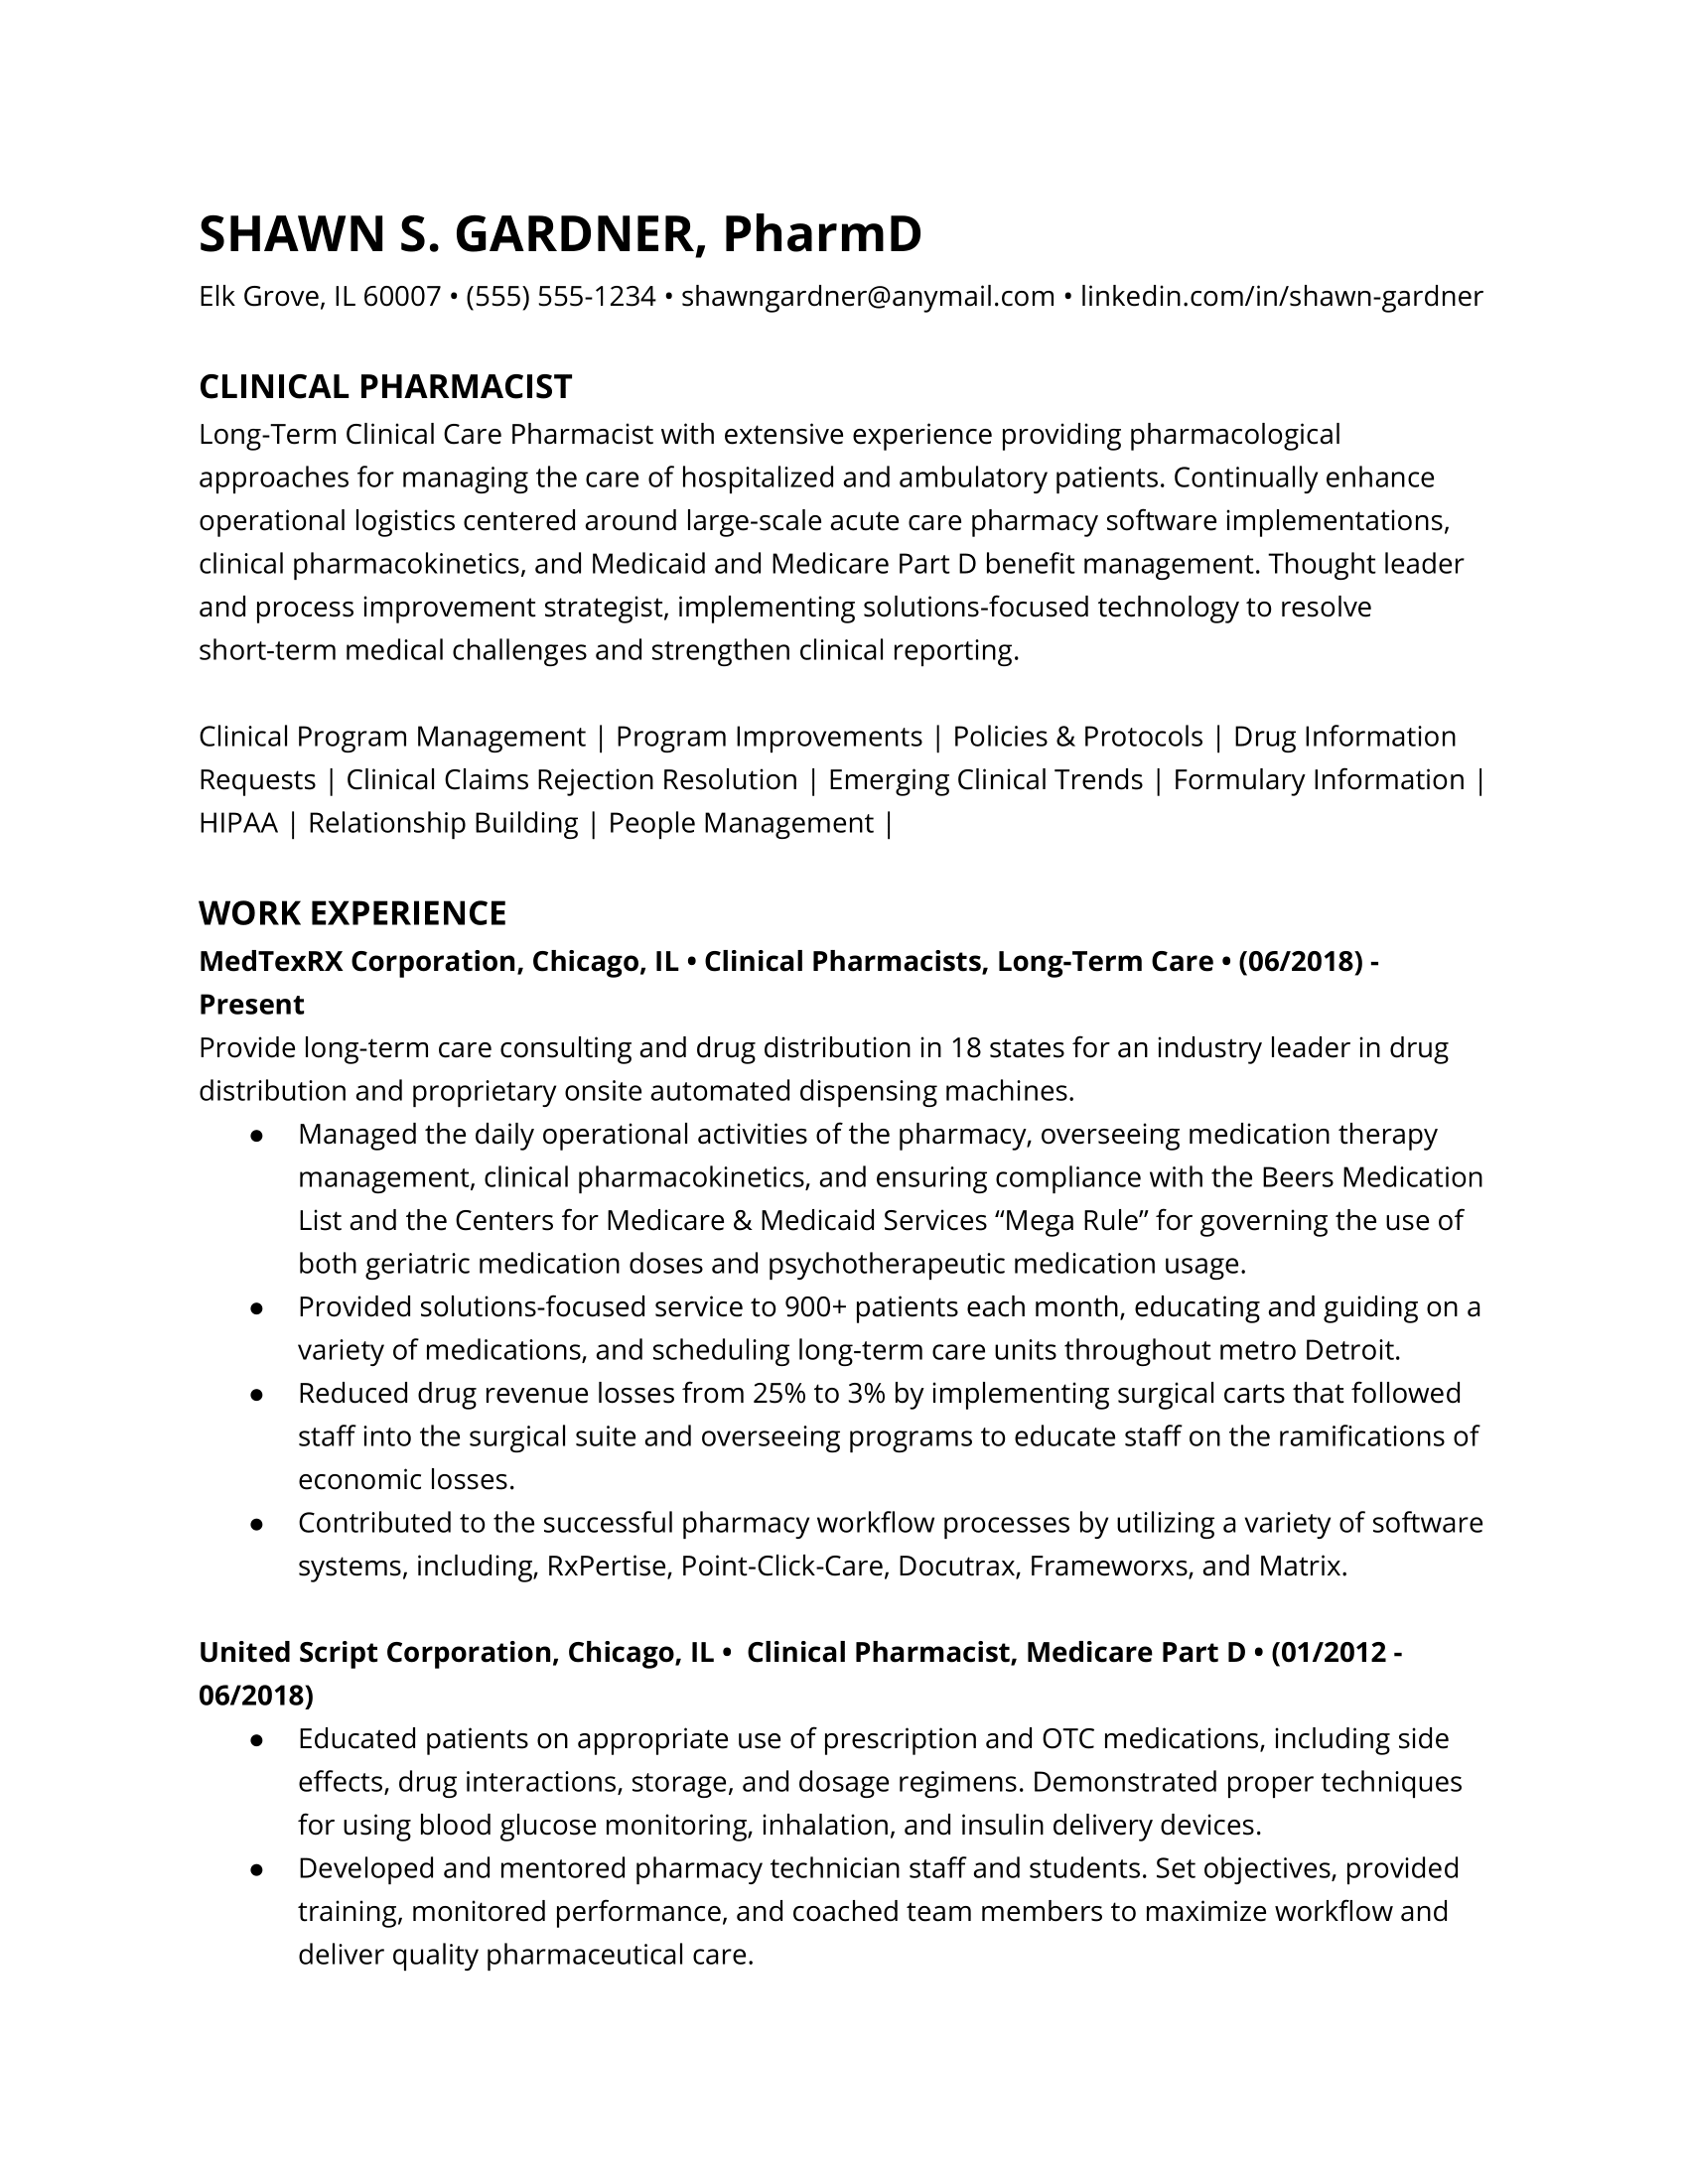 Clinical pharmacist resume example